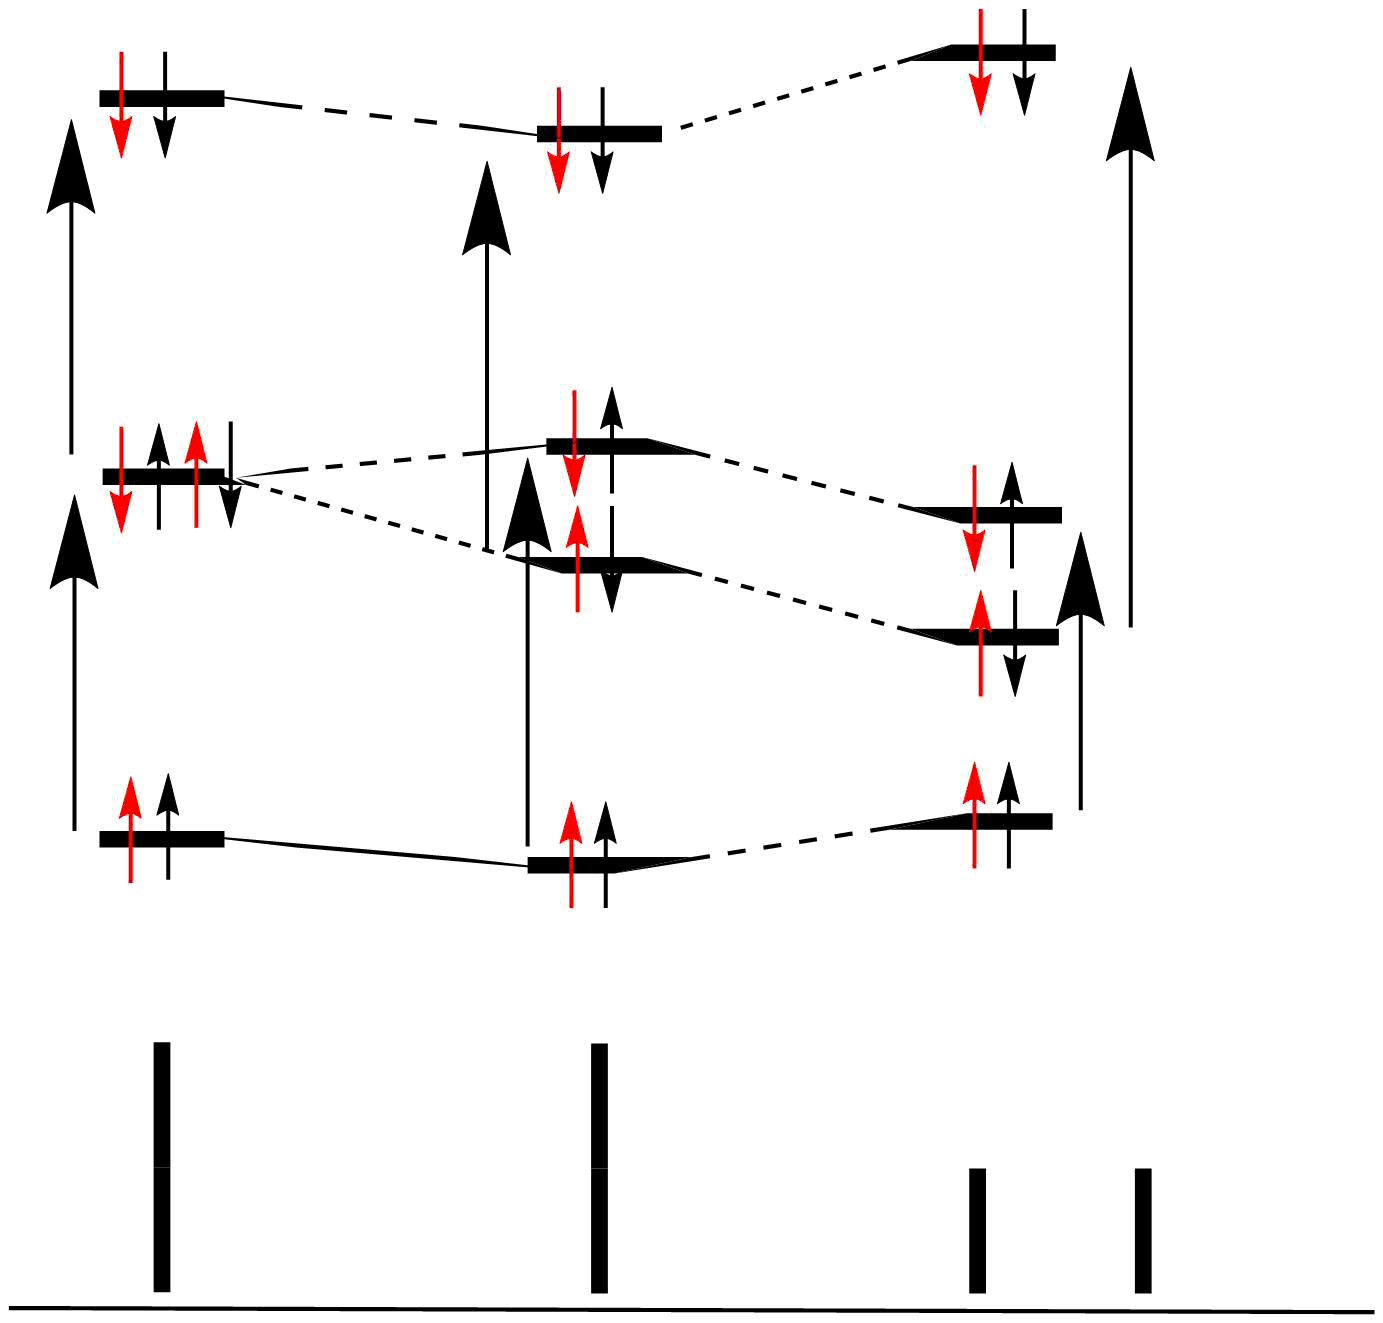 14.7: Spin-Spin Coupling Between Chemically Equivalent